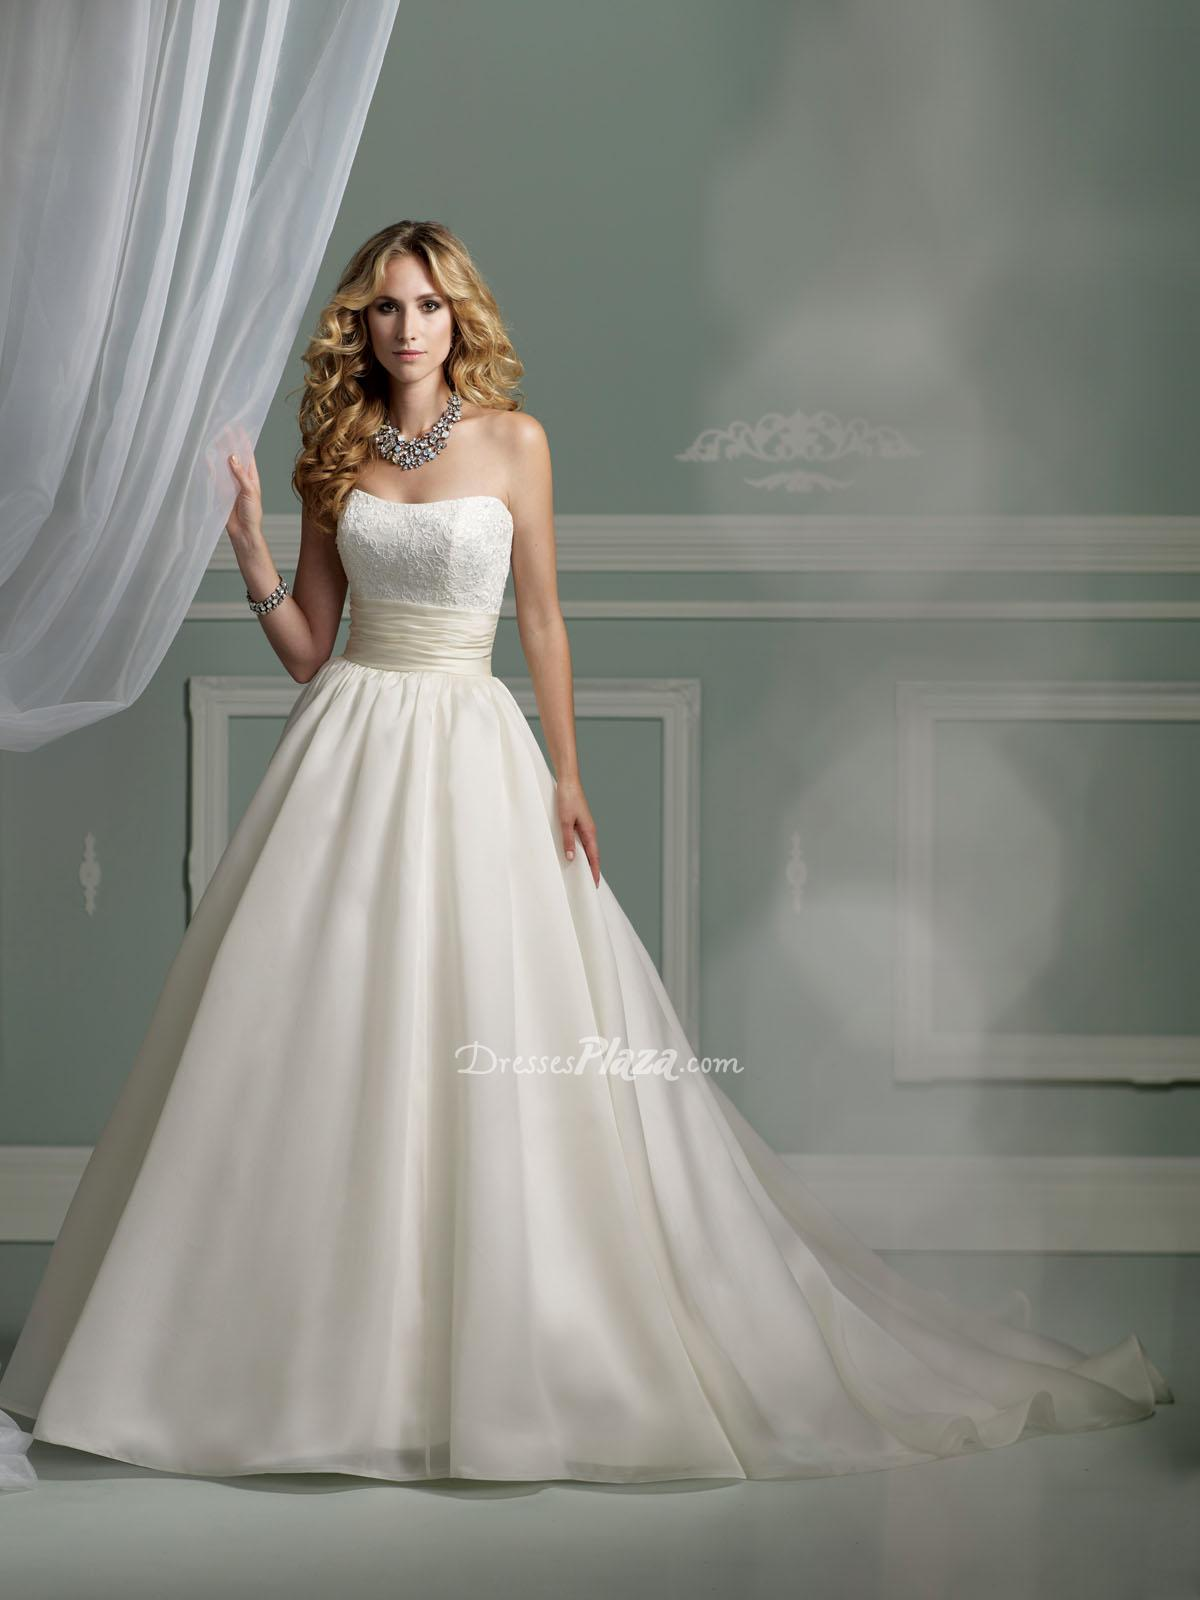 princess satin strapless wedding dress with lace